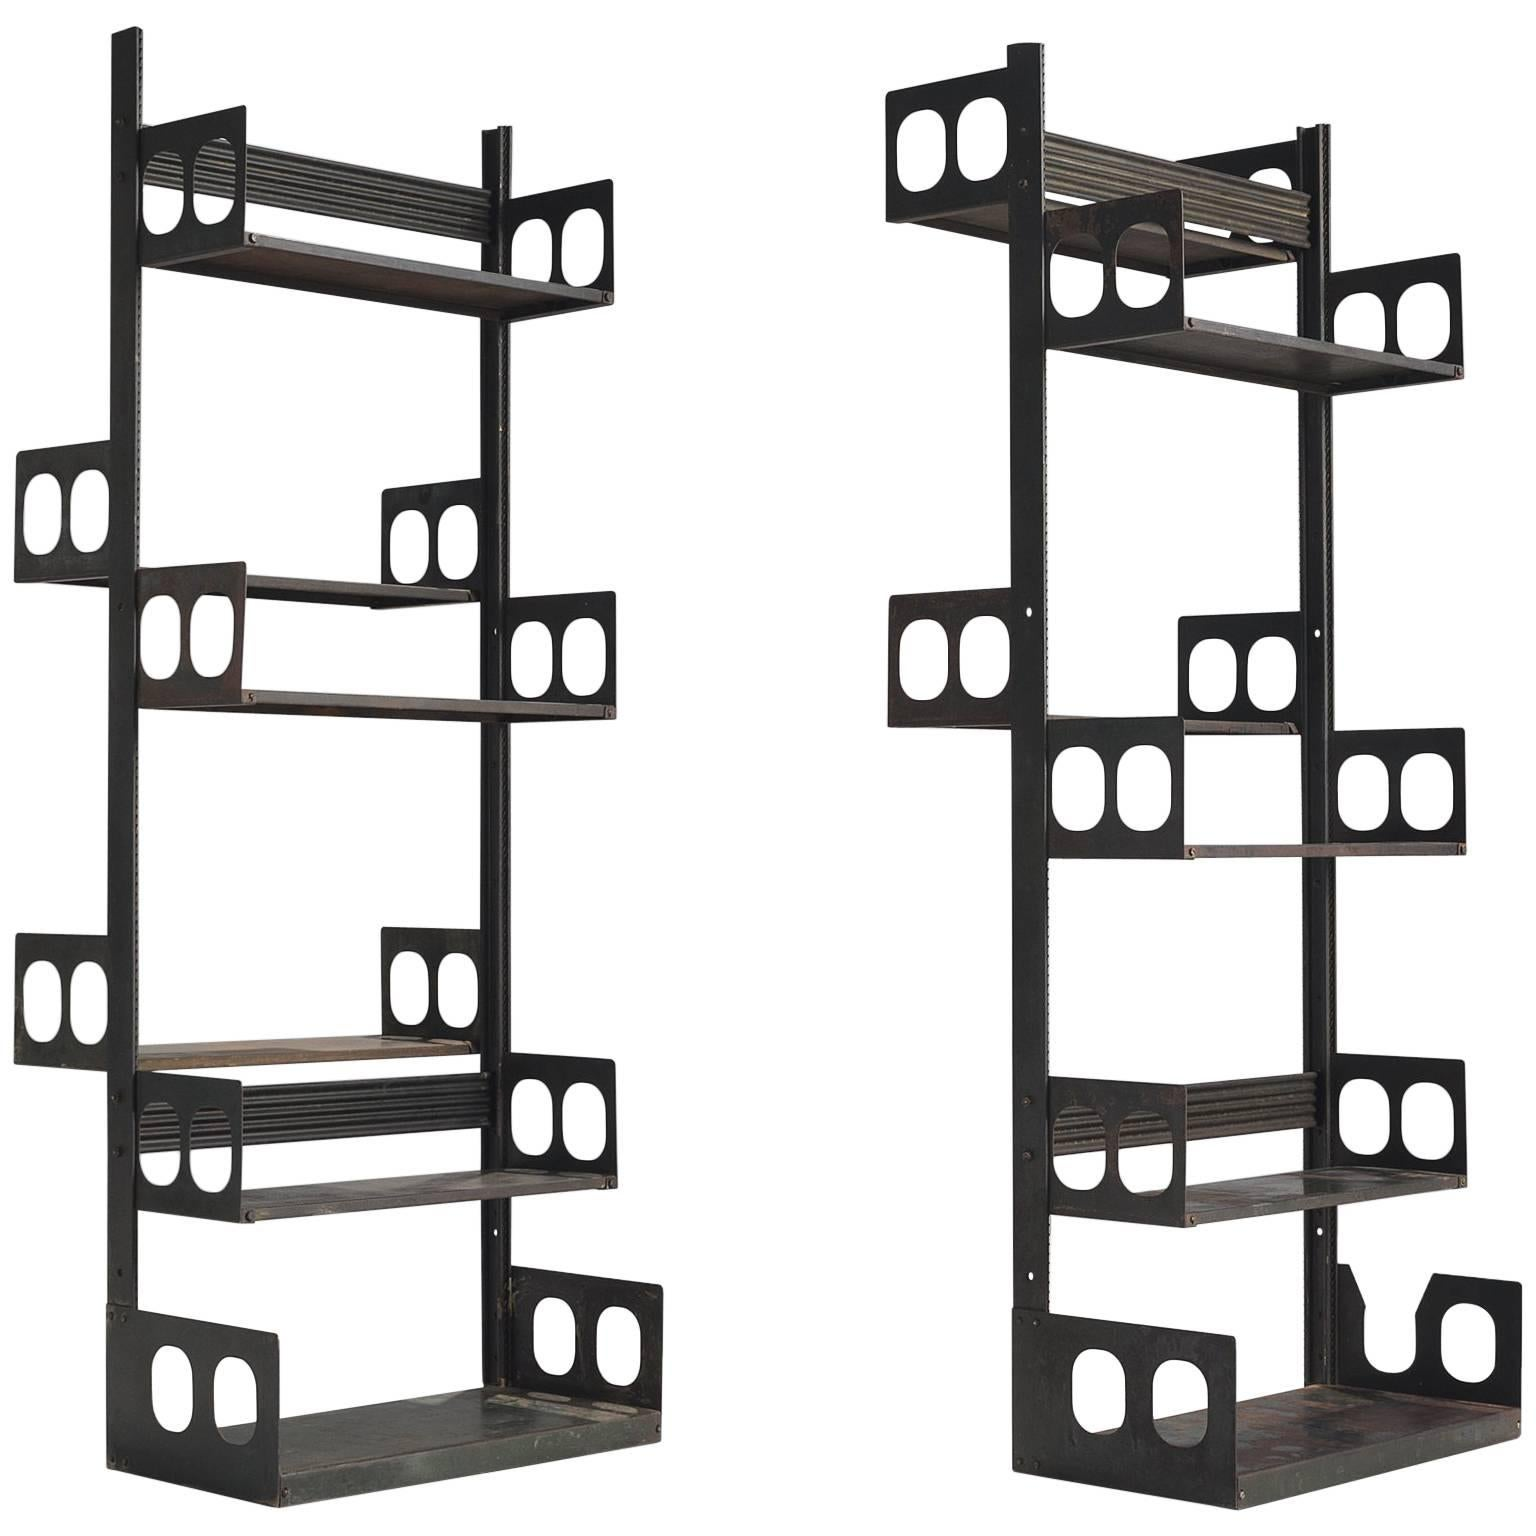 early lips vago shelving systems